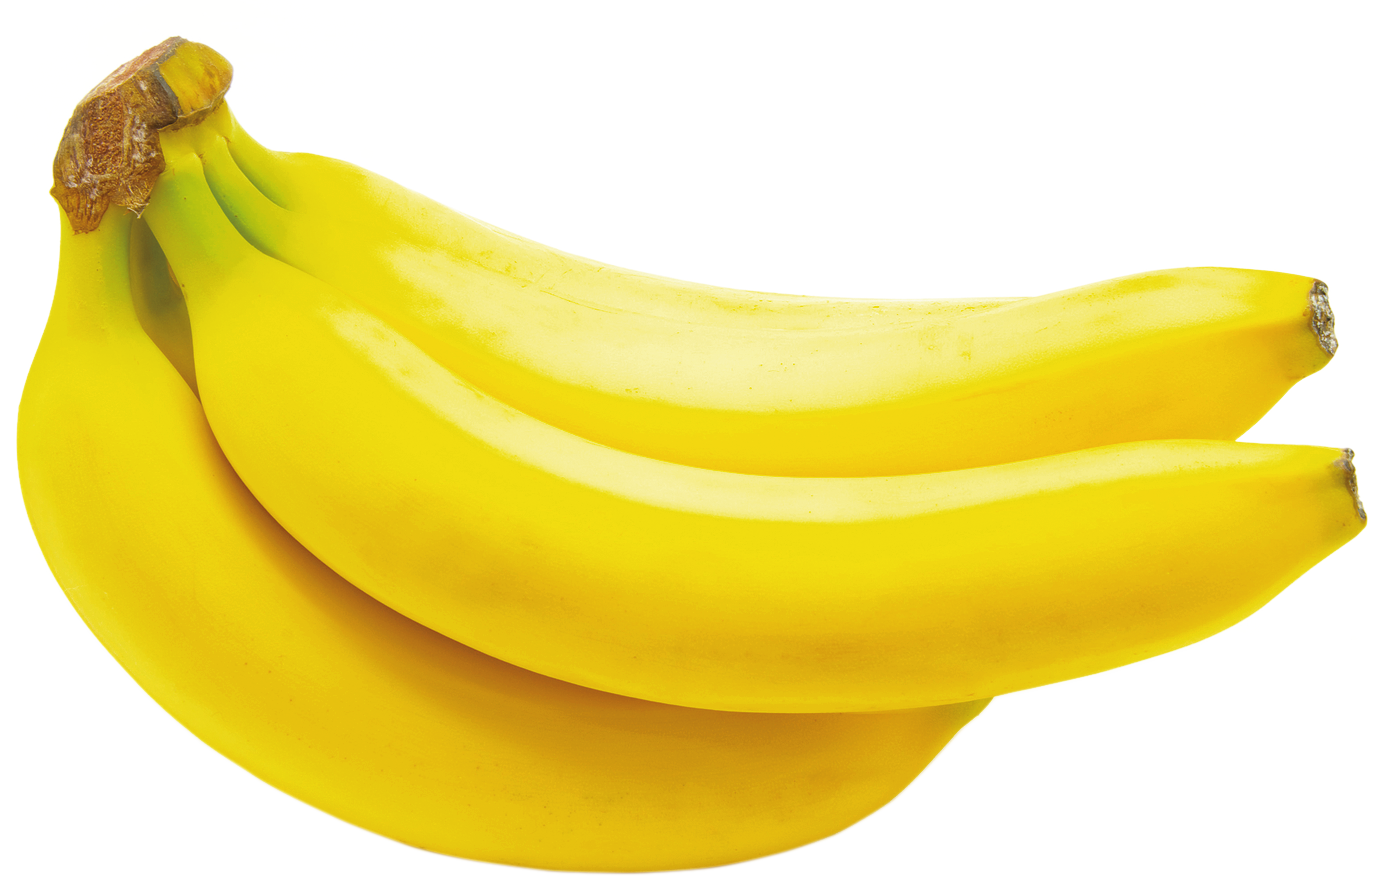 Png image without web. Banana clipart transparent background